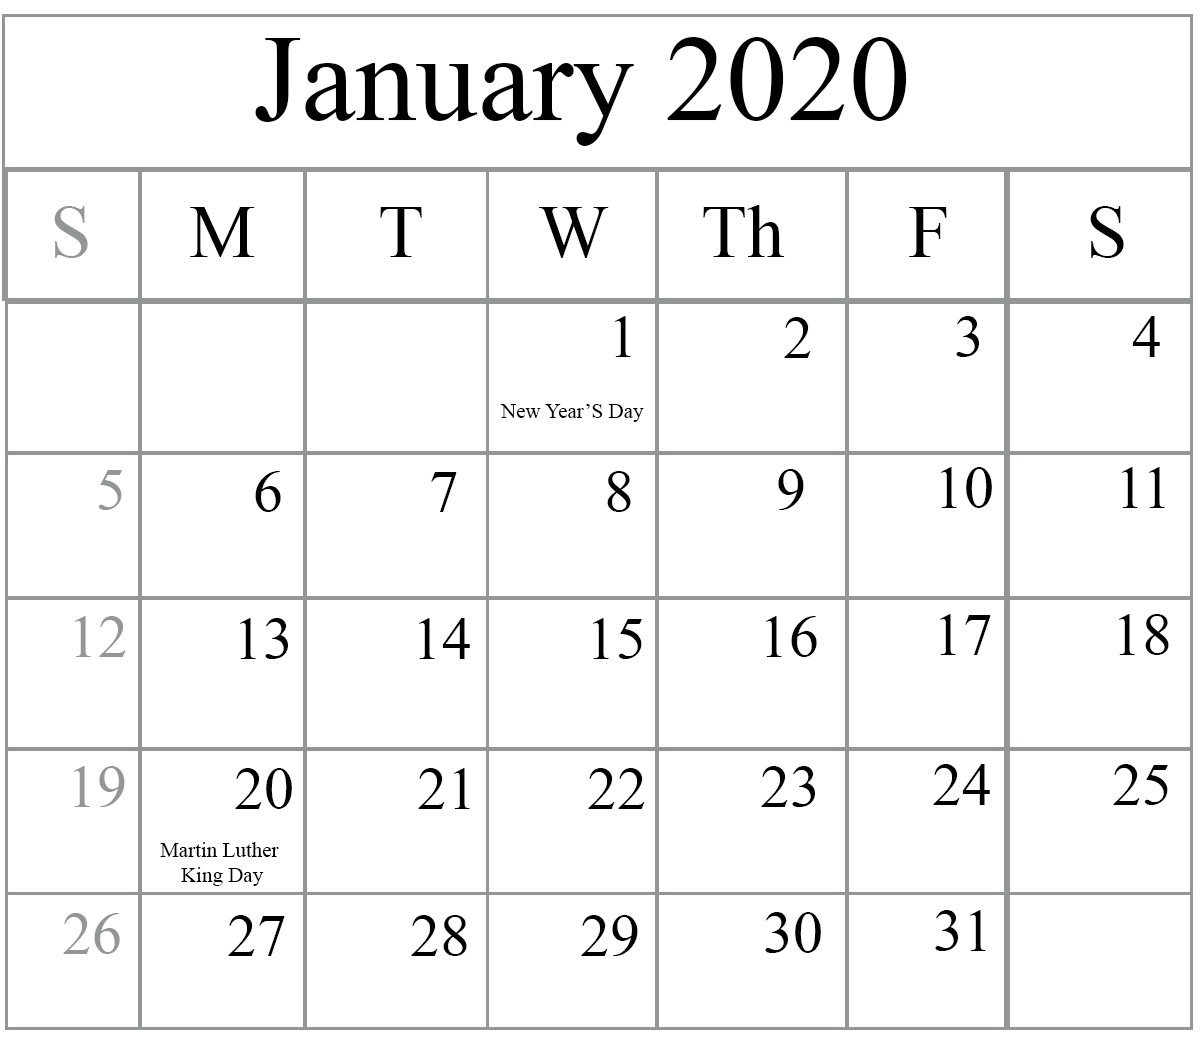 January 2020 Calendar Pdf | Free Printable Calendar-Monthly Calendars 2020 Printable Free 2-Pages Blank